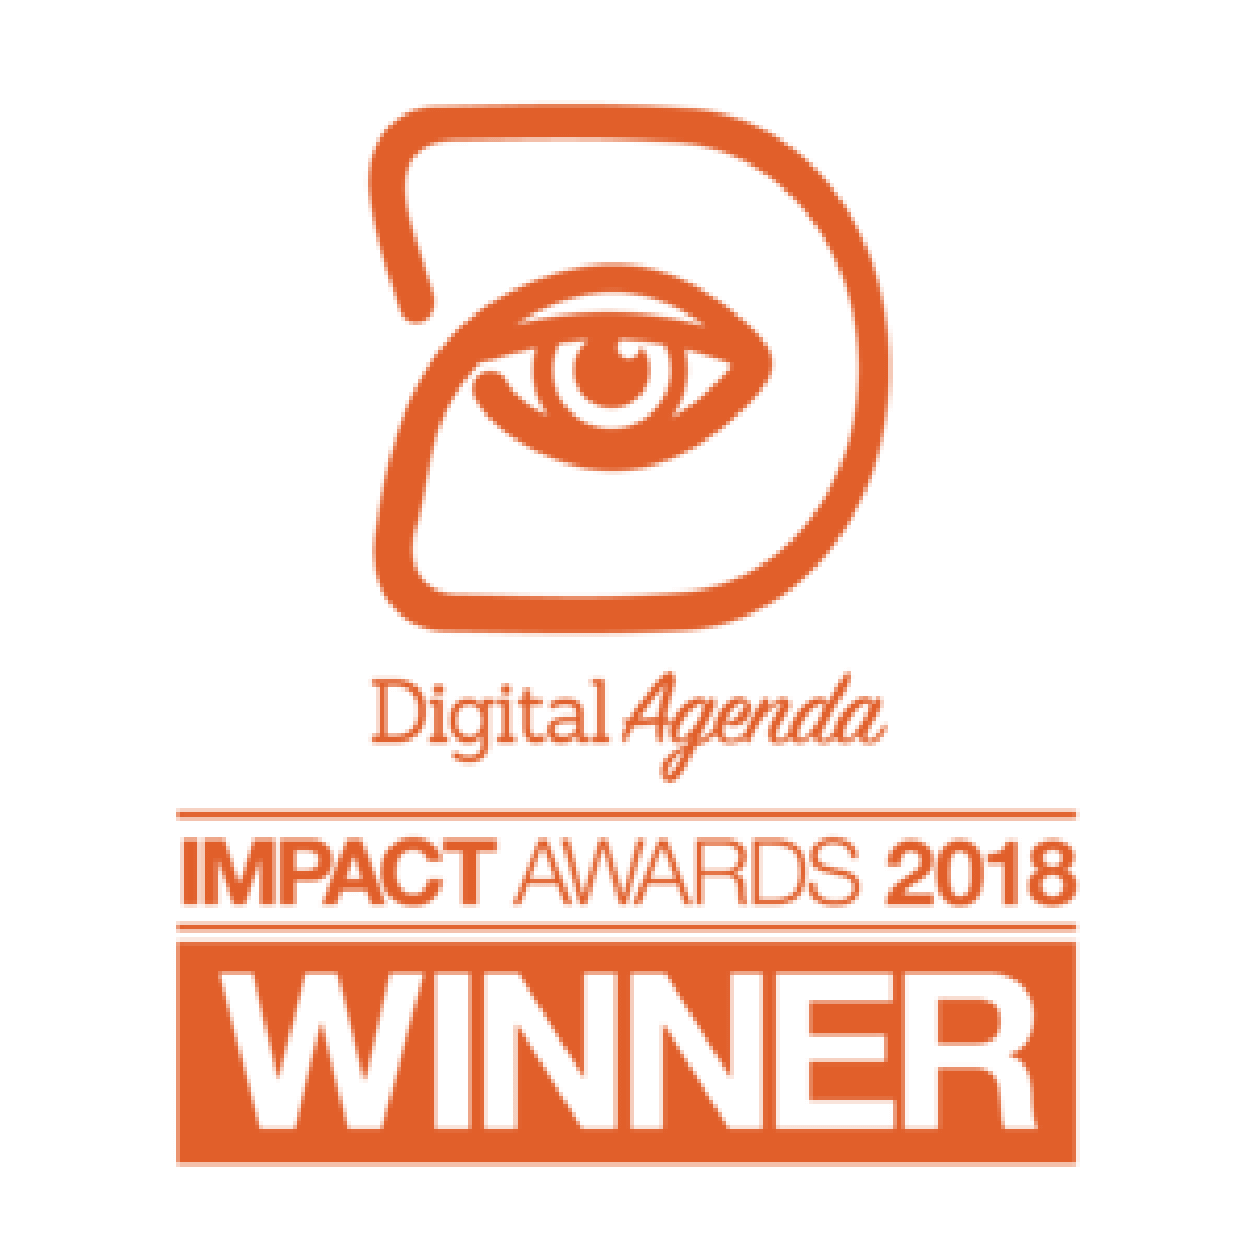 Digital agenda impact awards 2018 winner badge